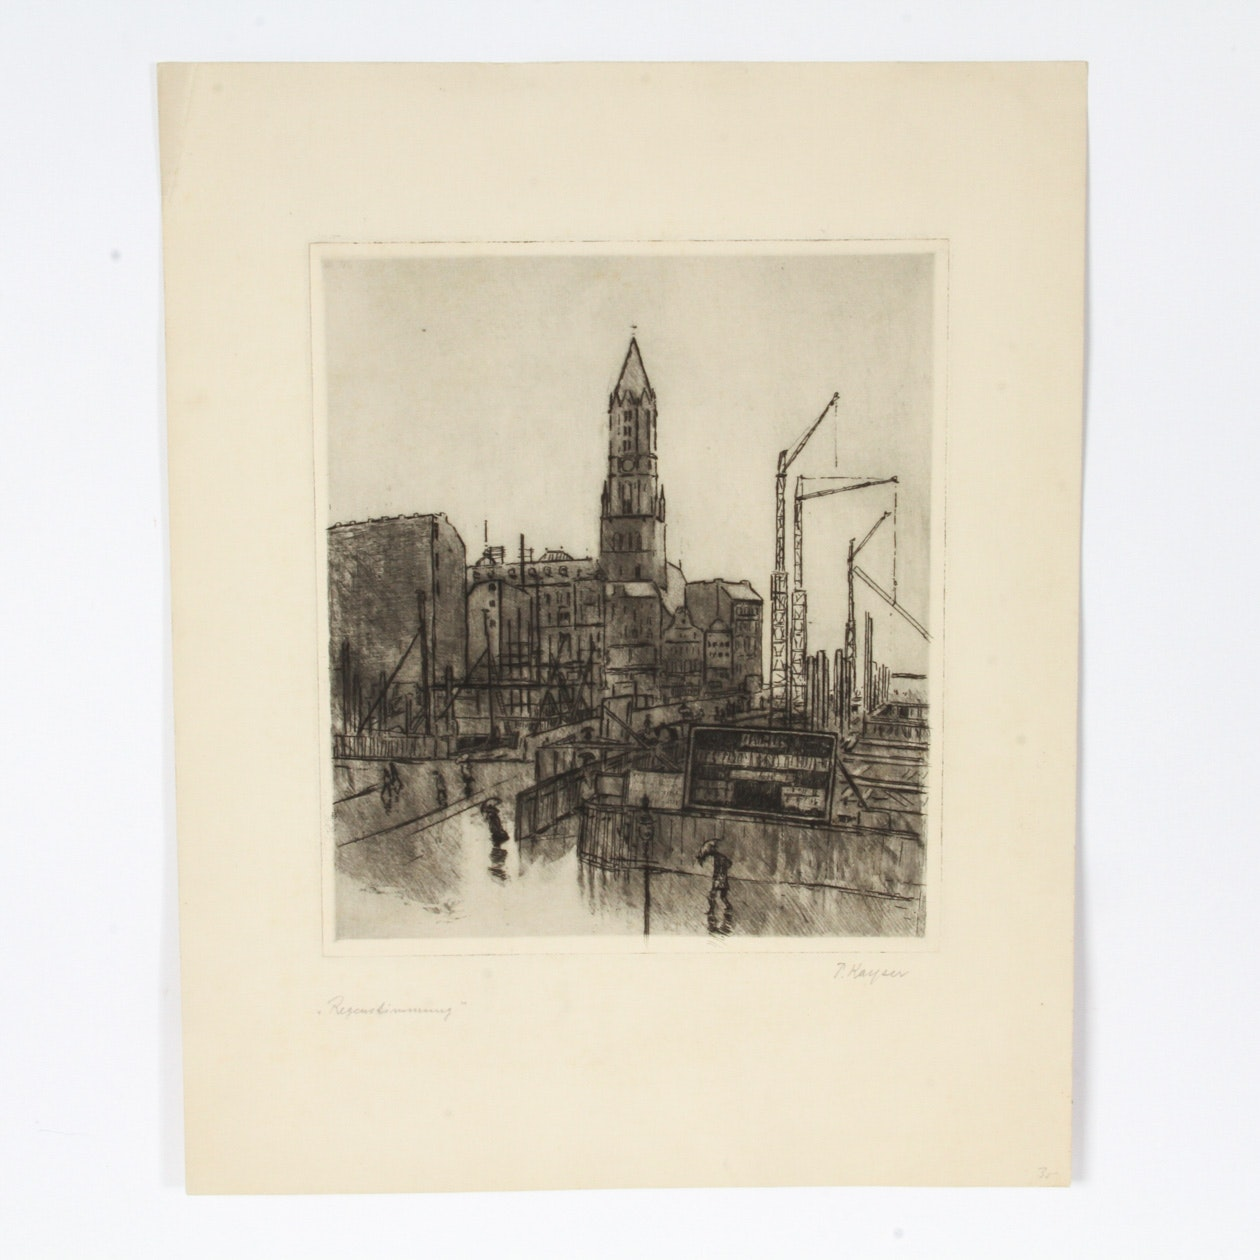 Paul Kayser Signed Lithograph on Paper